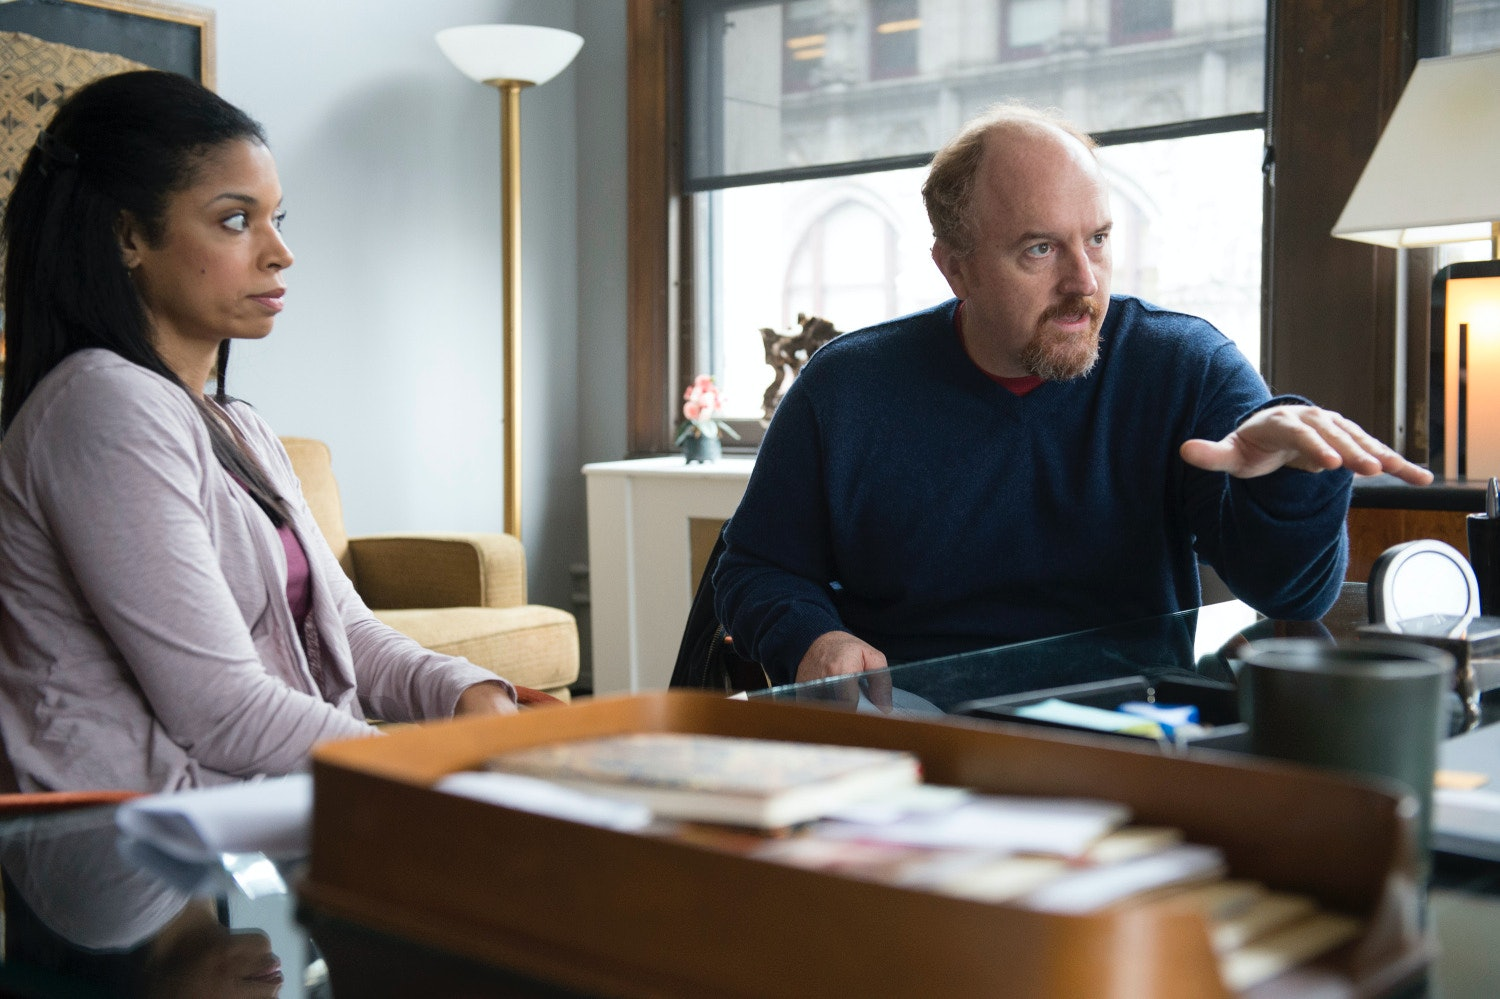 louis ck dating history Tig notaro feels free to open up about her complex history with louis  louis ck have had a rocky relationship  a 'huge relief' to have louis ck's.